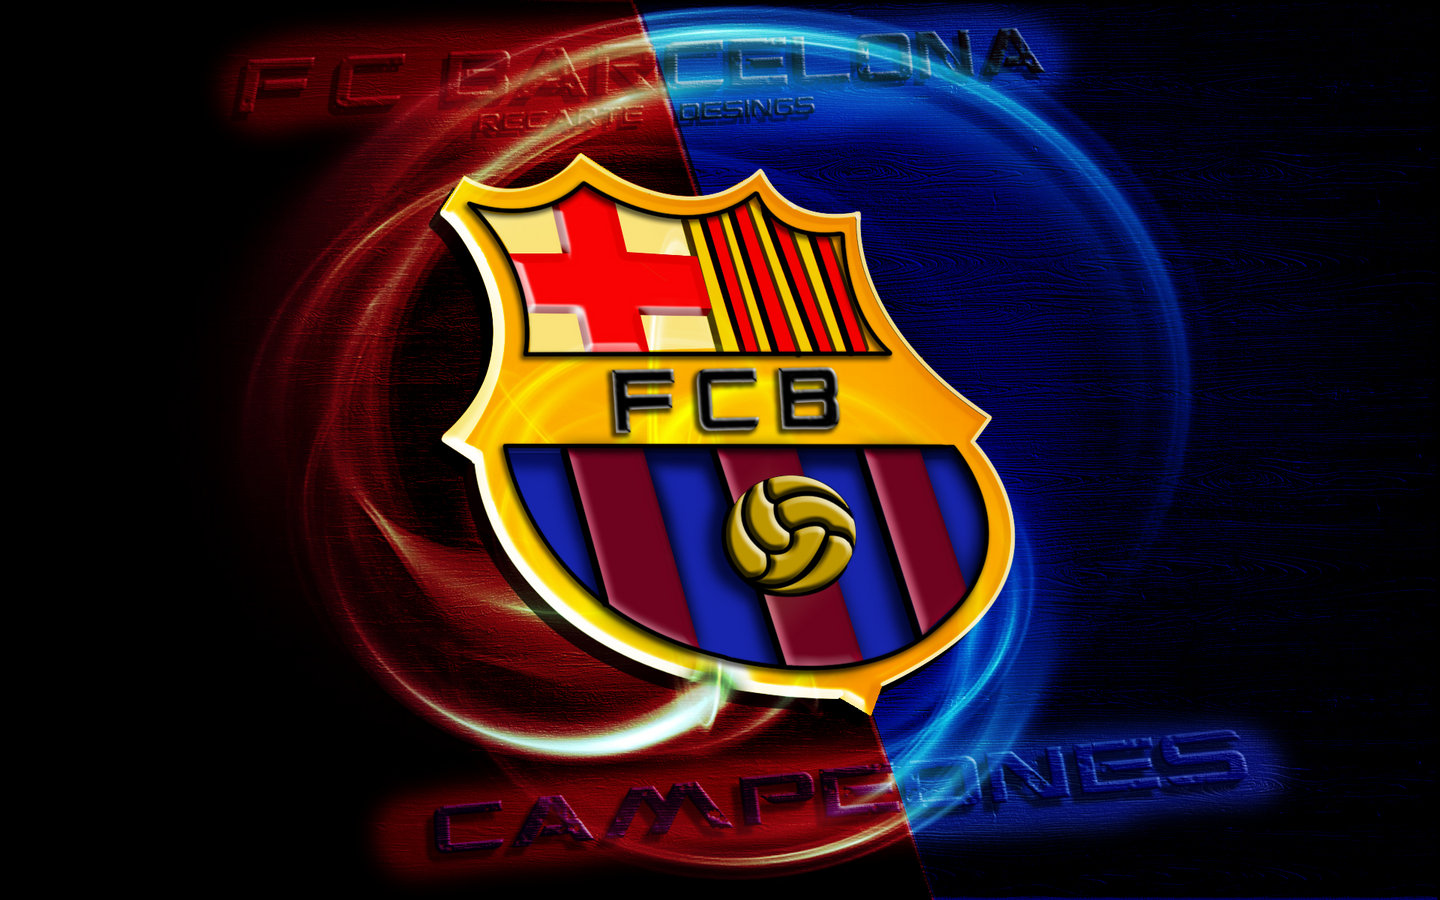 World Sports Hd Wallpapers FC Barcelona Hd Wallpapers 1440x900